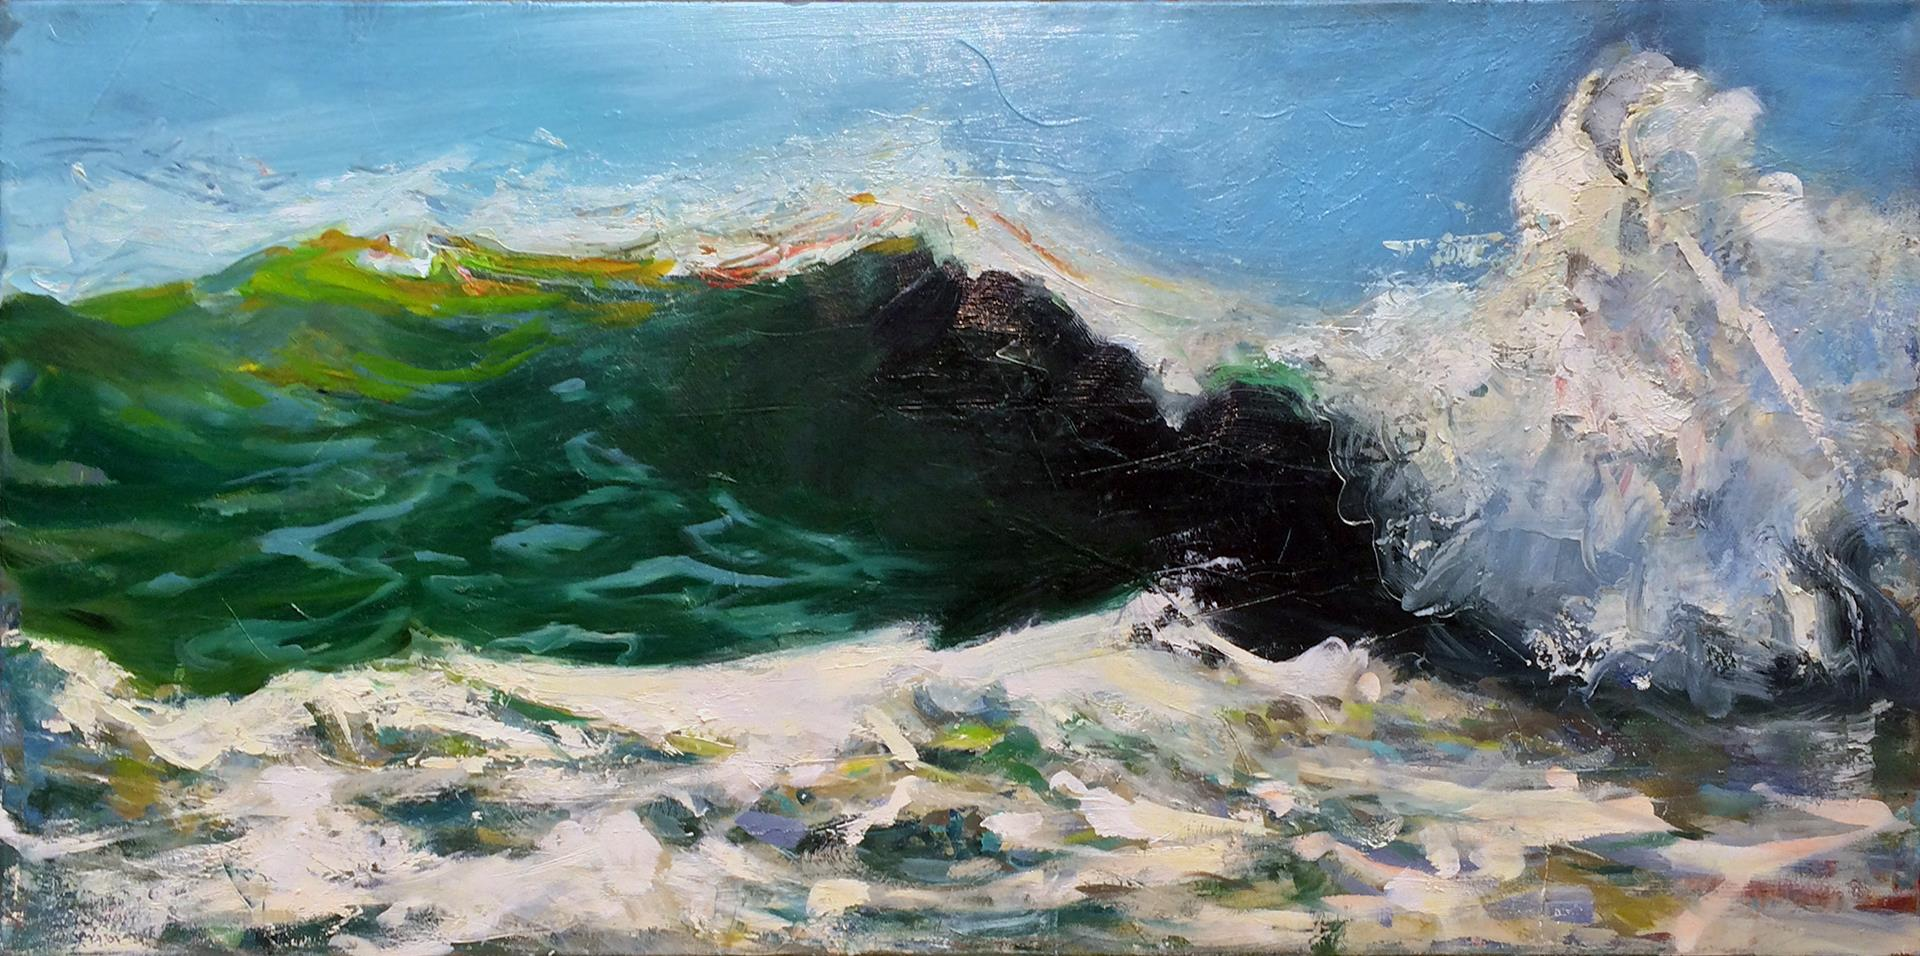 close up oil painting of surfer worthy ocean wave